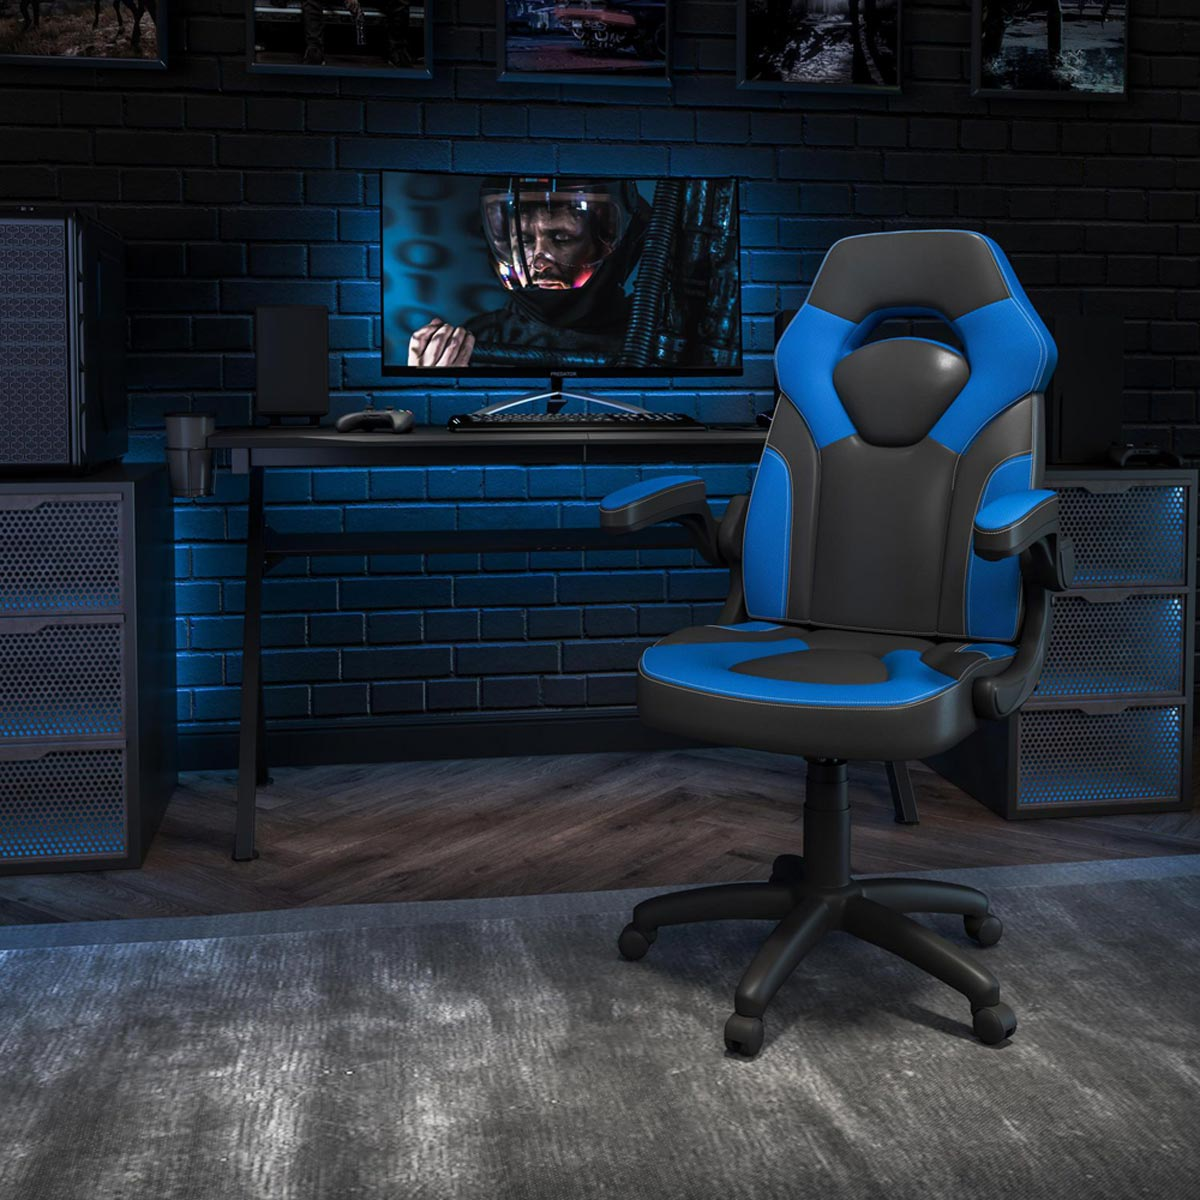 Ergonomic High-Back Computer Gaming Chair with Flip-Up Arms, Blue & Black